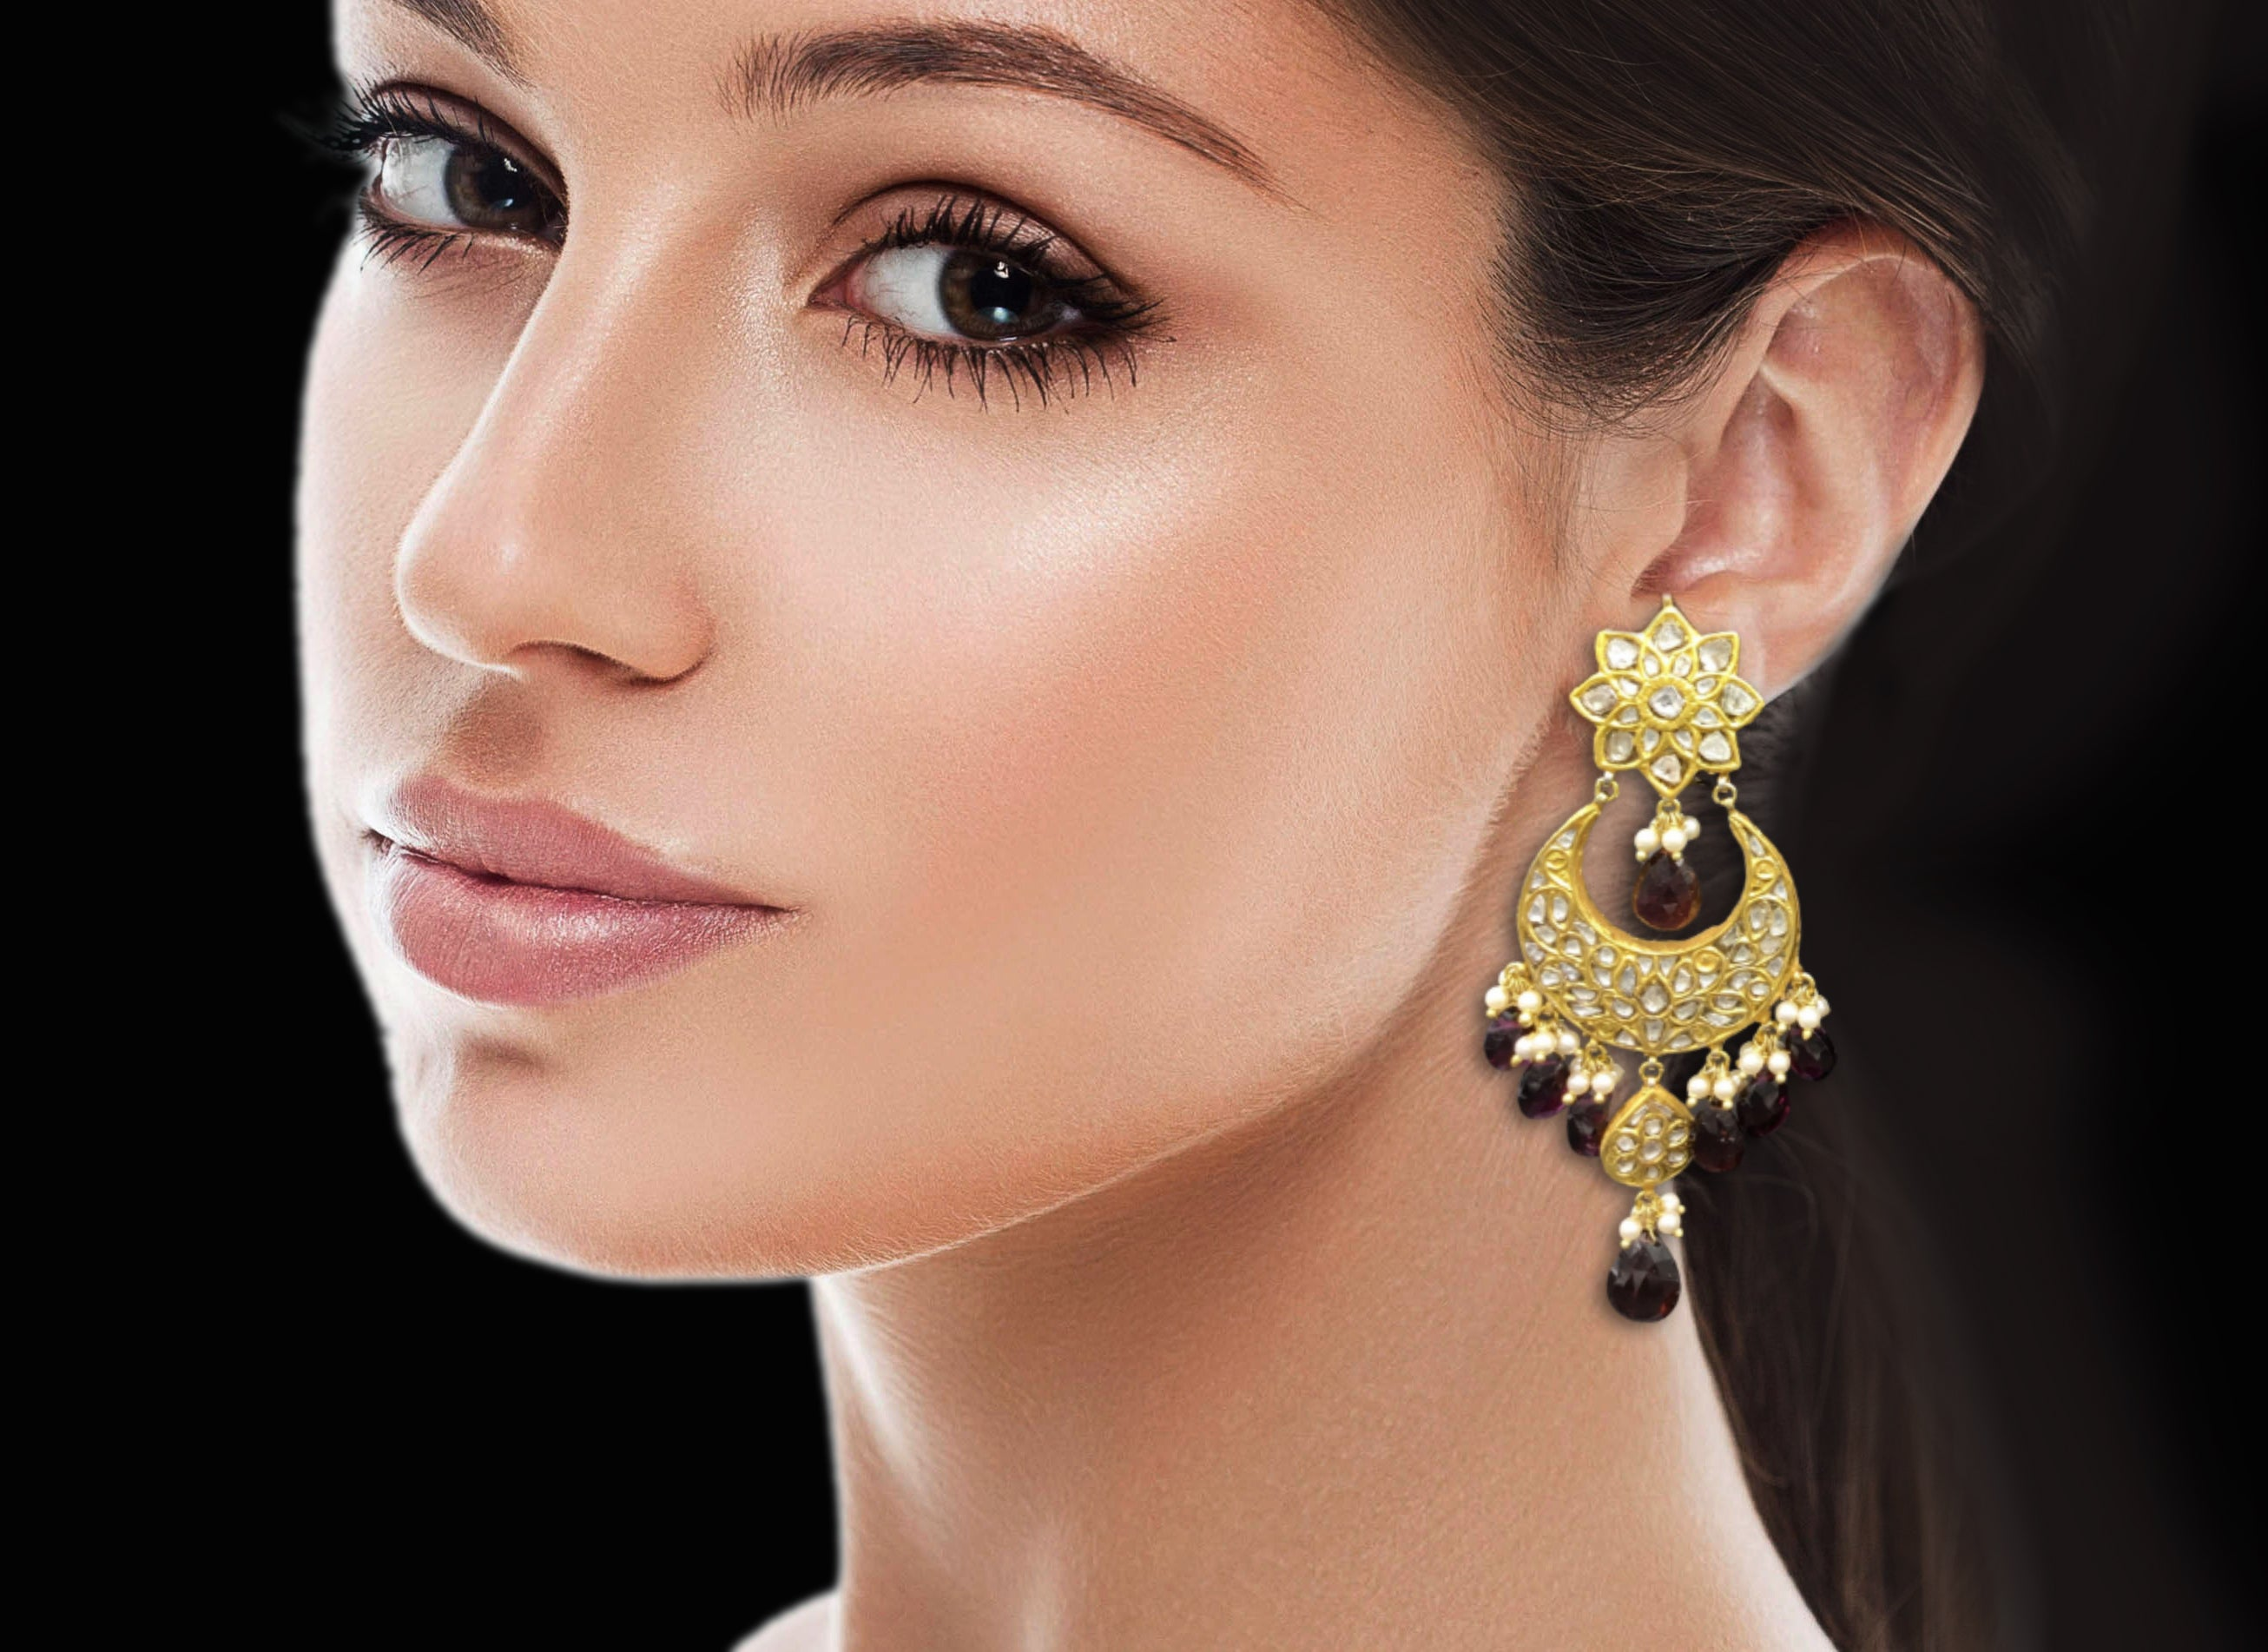 23k Gold and Diamond Polki Chand Bali Earring Pair with Mozambique Garnets